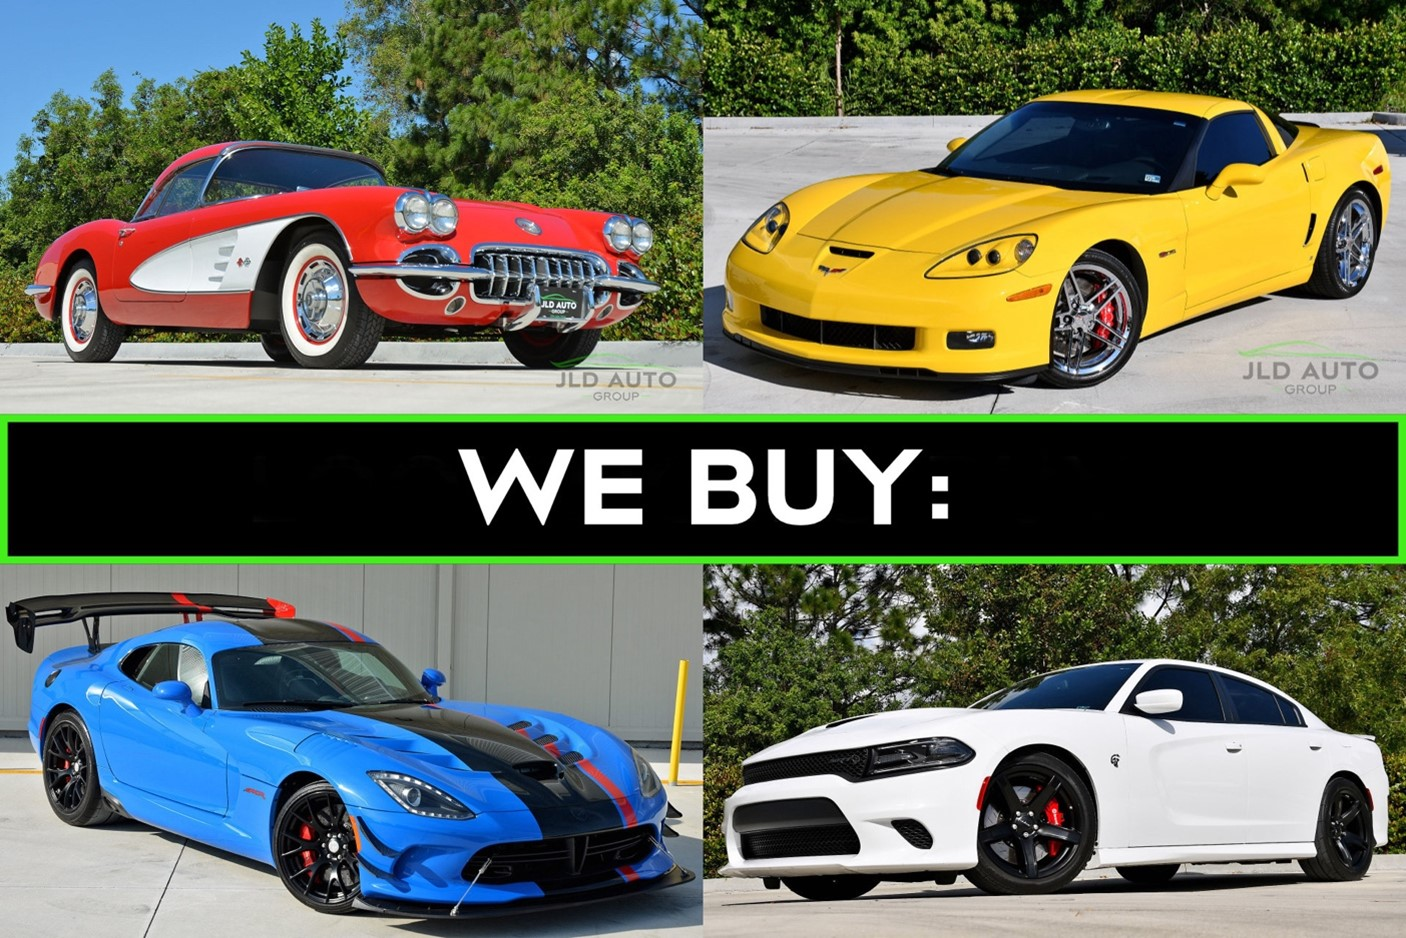 We Buy JLD Auto Group